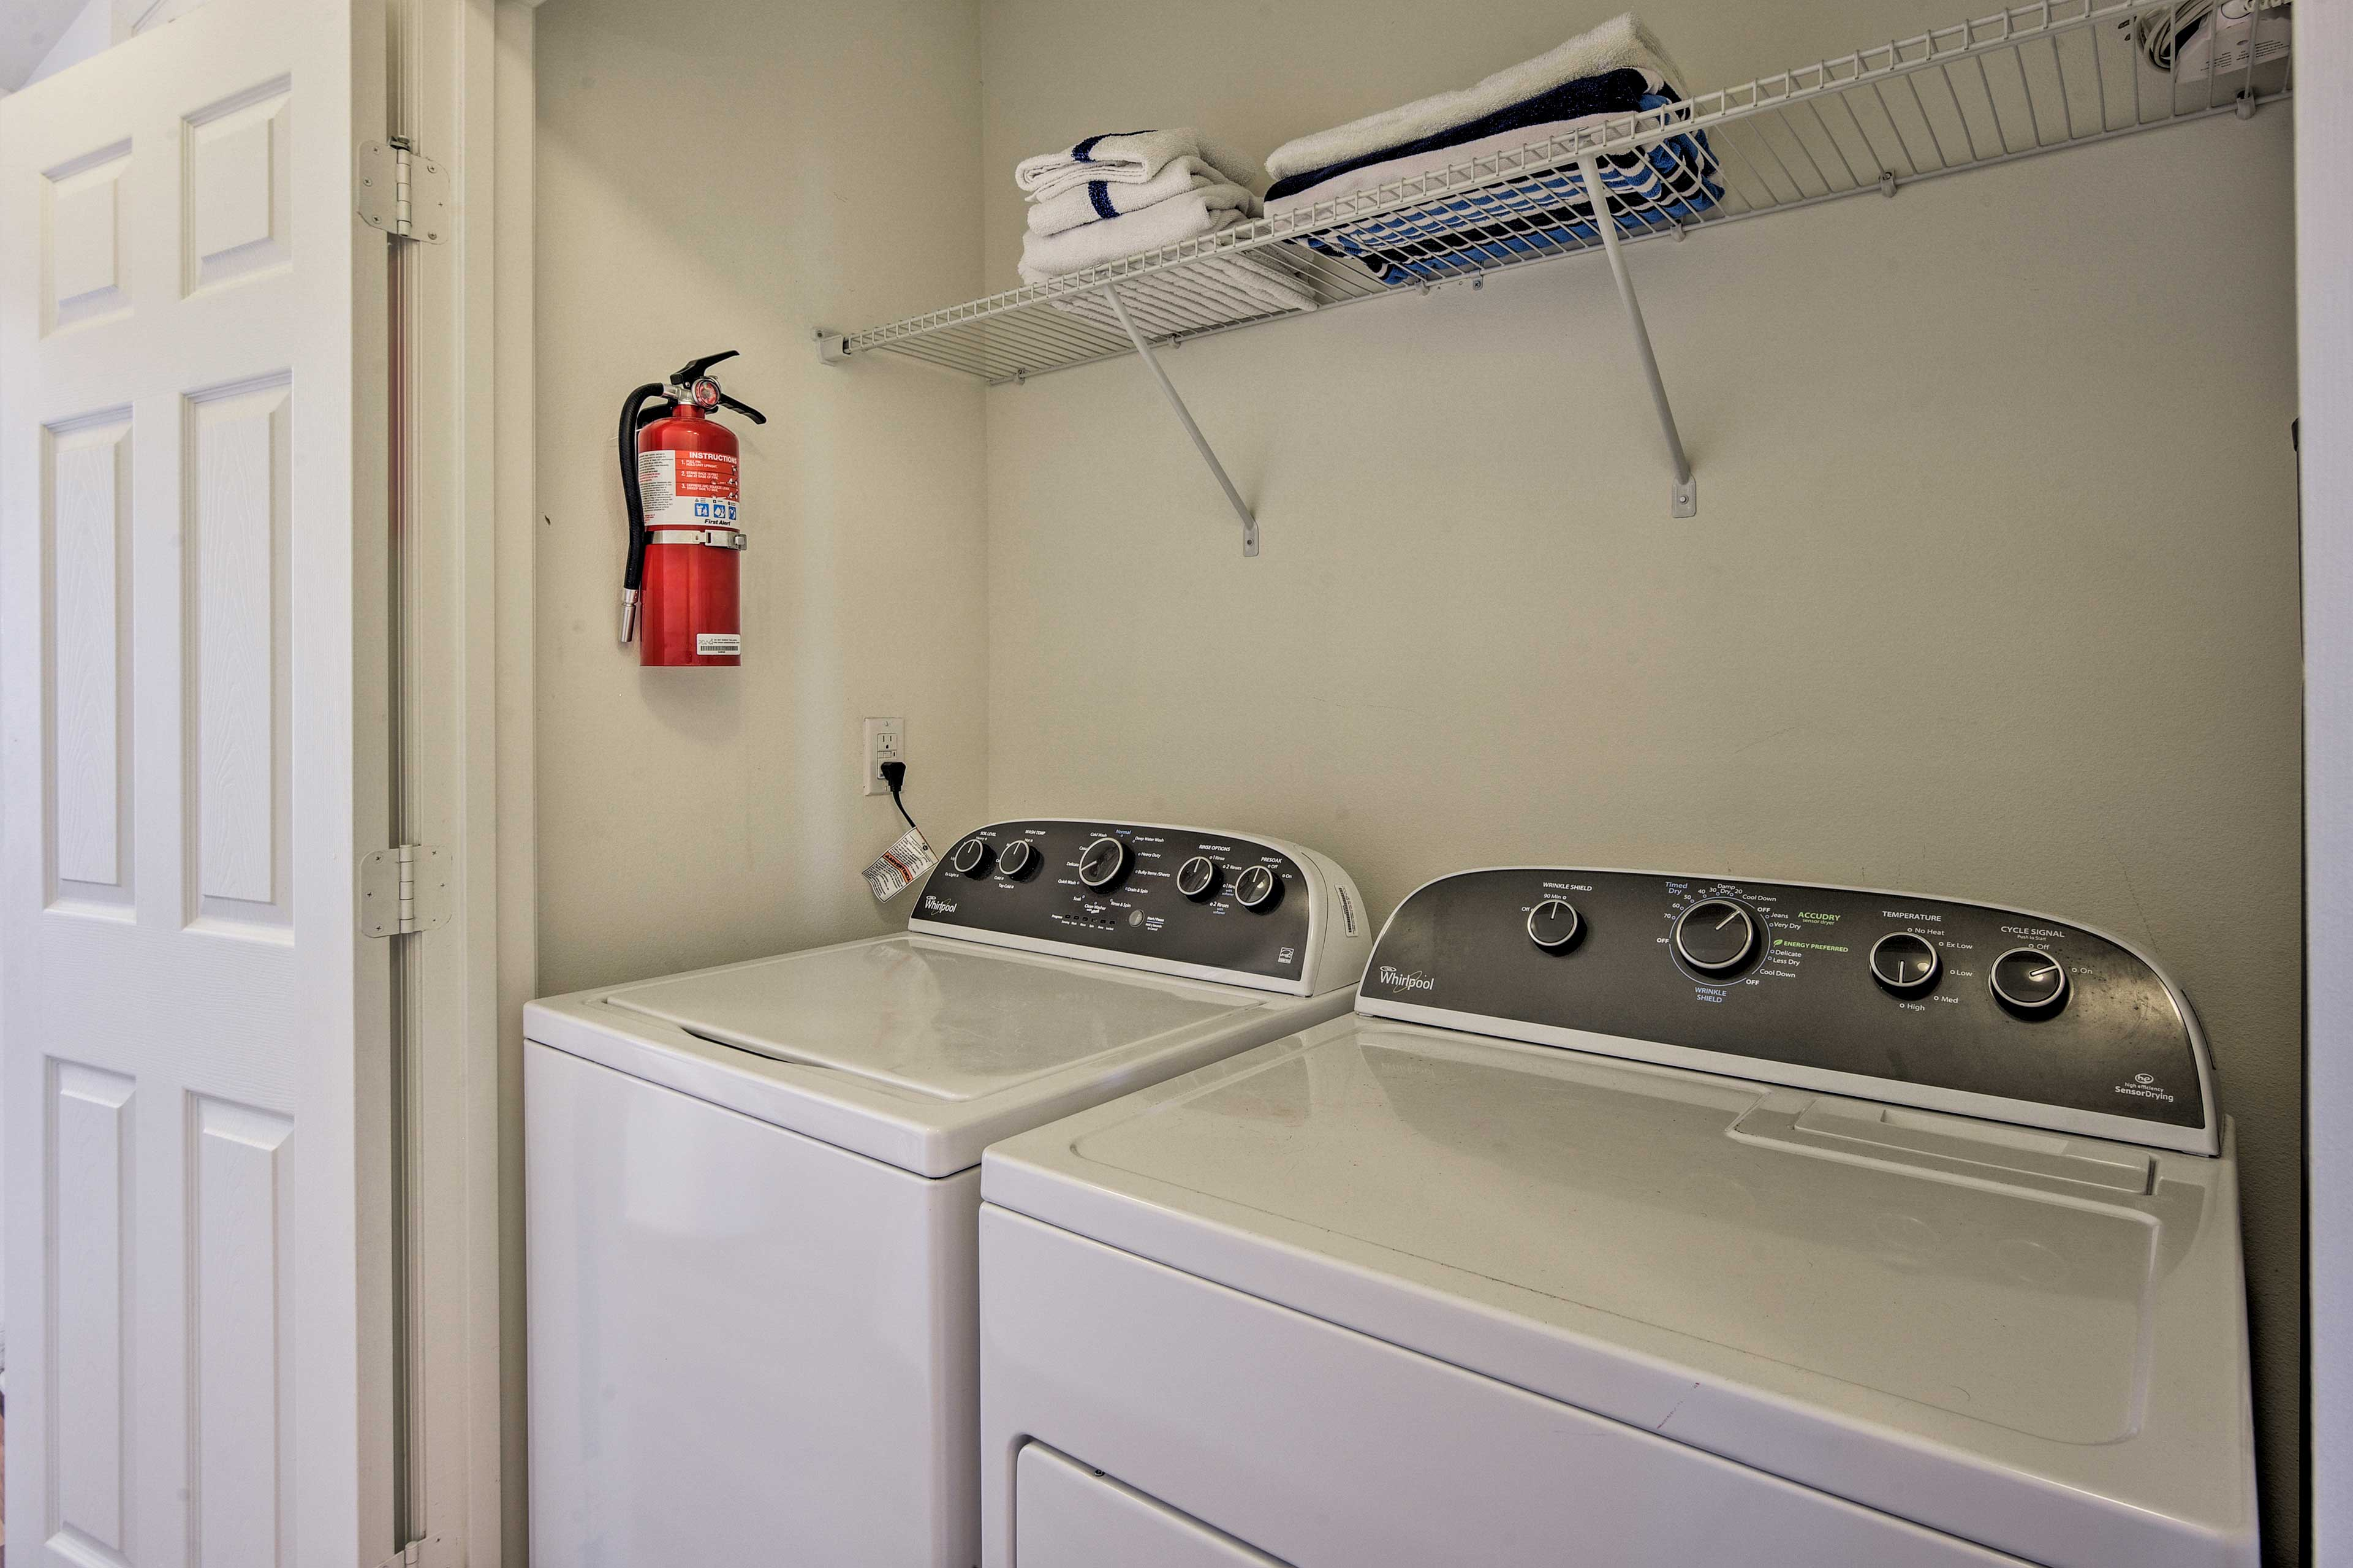 Toss your clothes in the washing machine after a day at Disney!